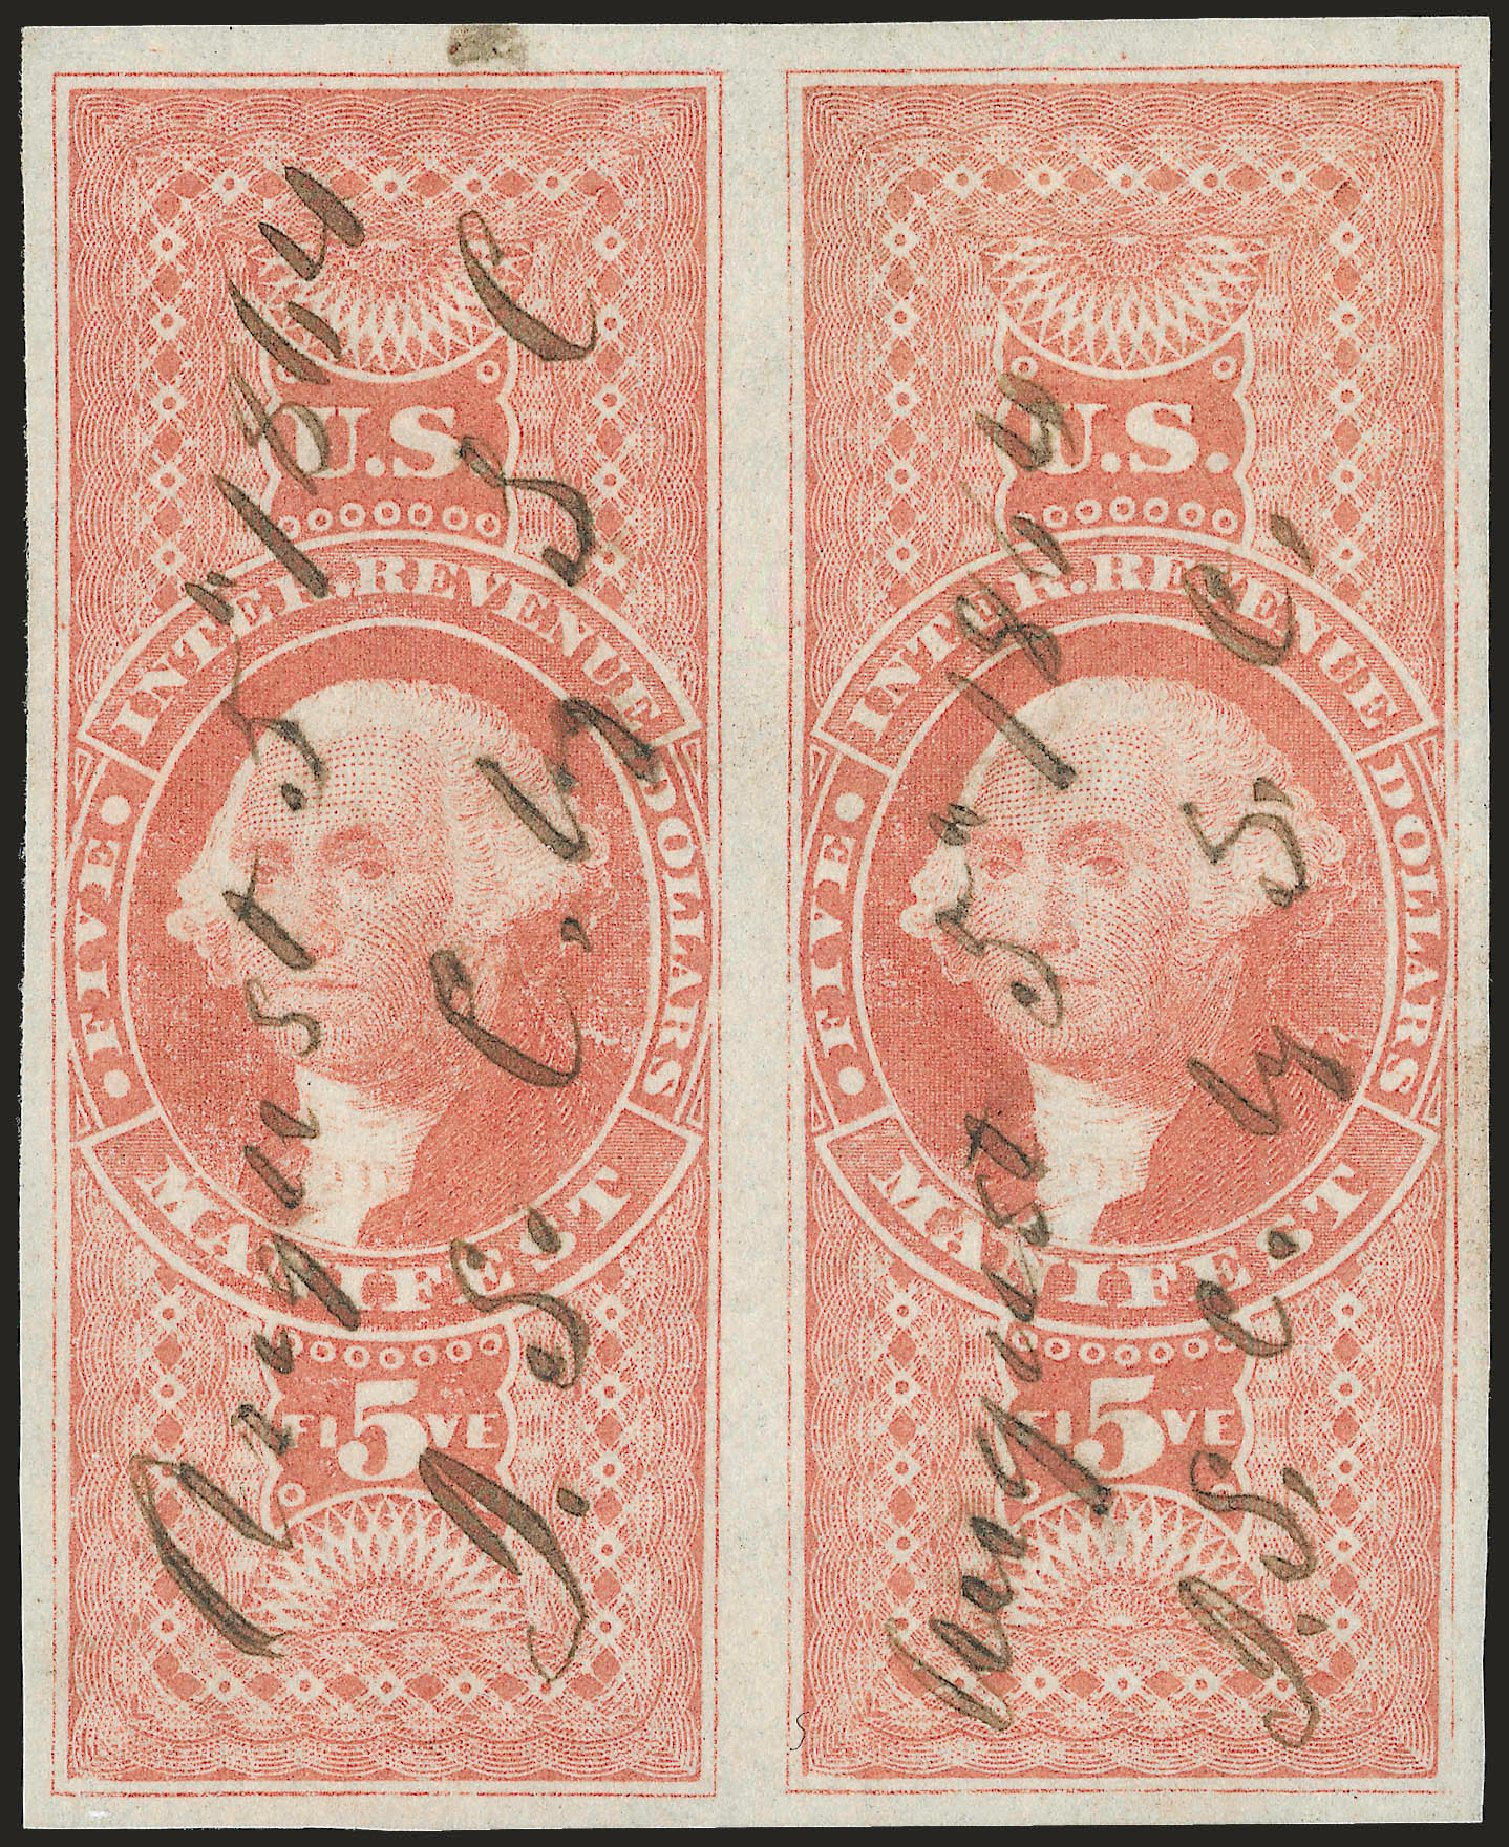 US Stamps Prices Scott Catalogue #R90 - US$5.00 1862 Revenue Manifest. Robert Siegel Auction Galleries, Jun 2009, Sale 975, Lot 2296